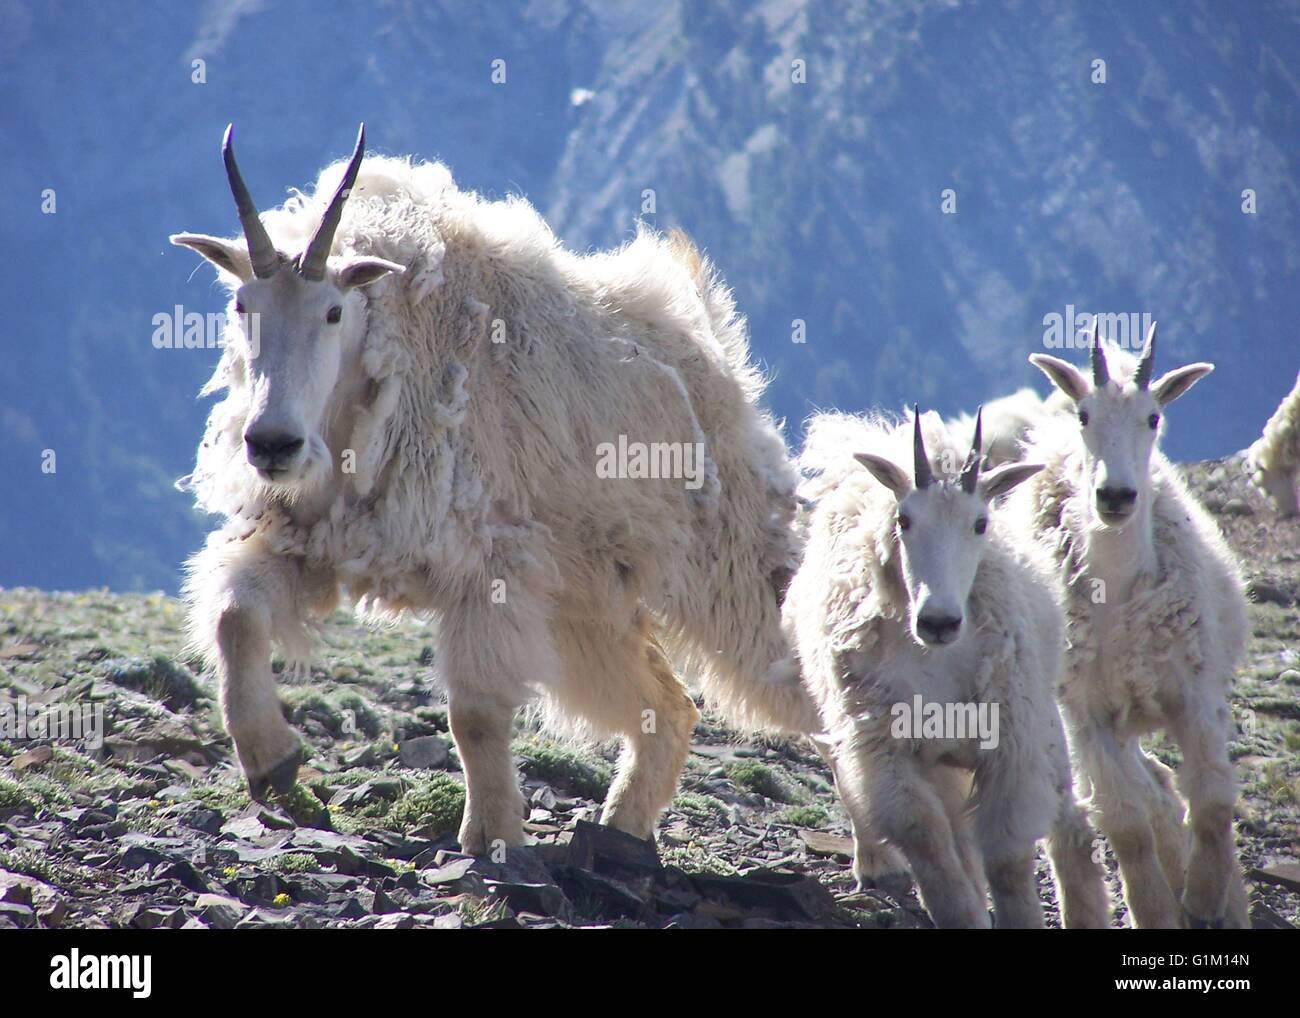 A Rocky Mountain goat nanny with kids in the Wallowa Mountains of Lostine Wildlife Area in Oregon. Stock Photo